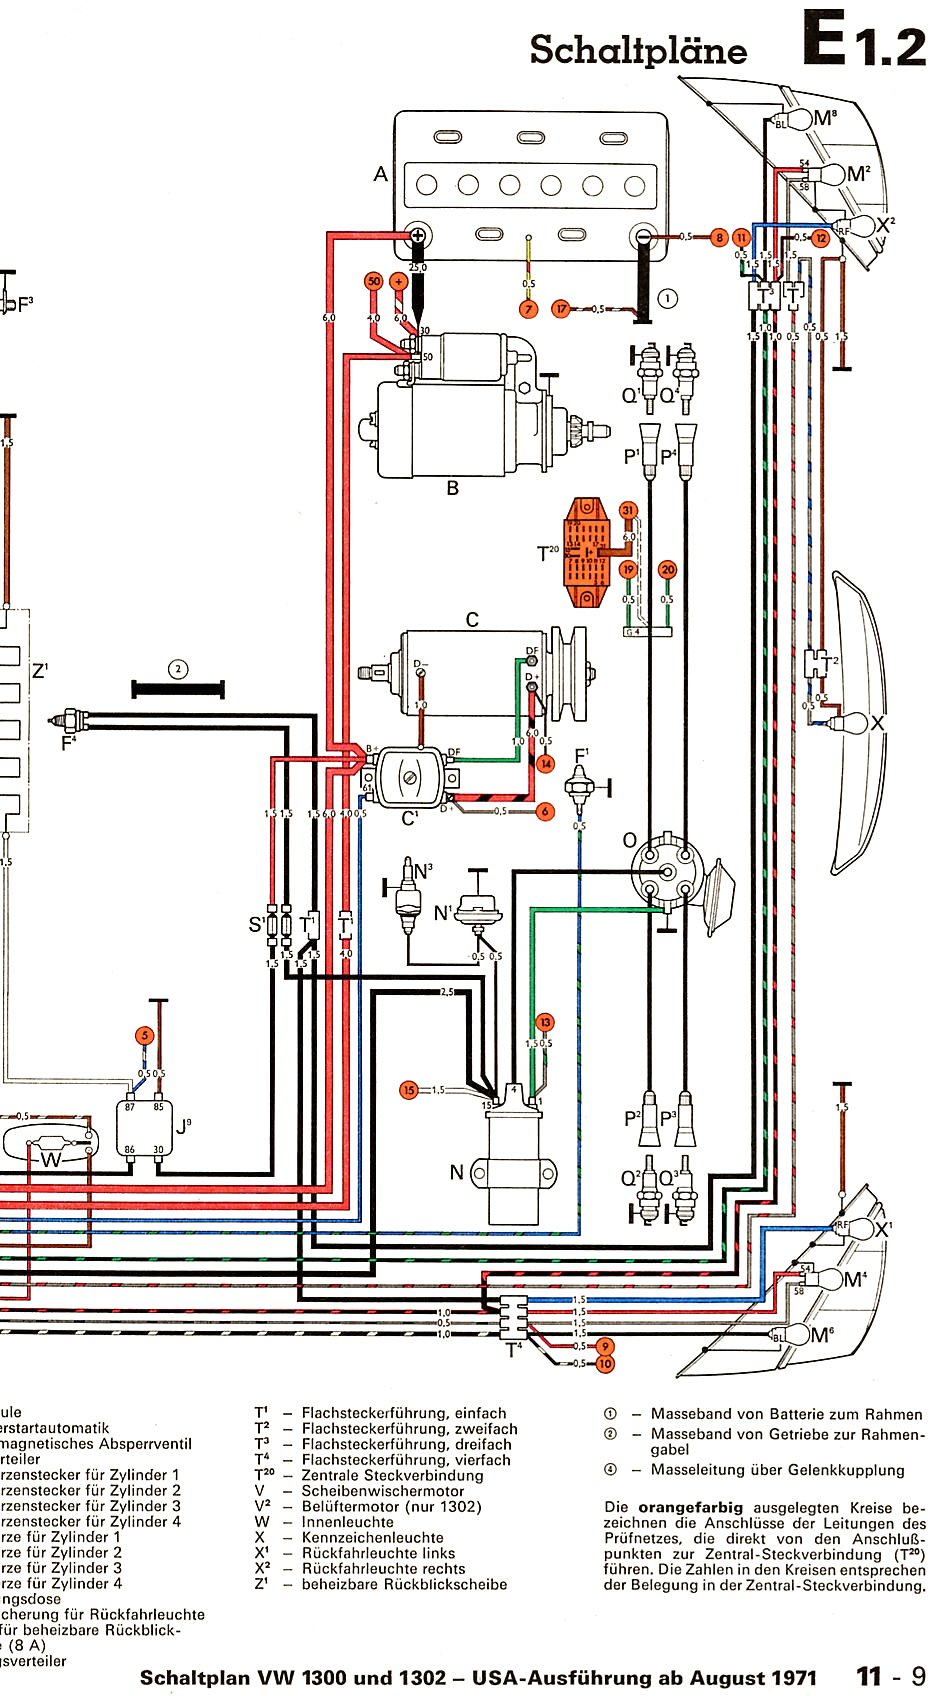 1300_and_1302_USA_from_August_1971 2 73 super beetle voltage regulator shoptalkforums com vw beetle voltage regulator wiring diagram at readyjetset.co